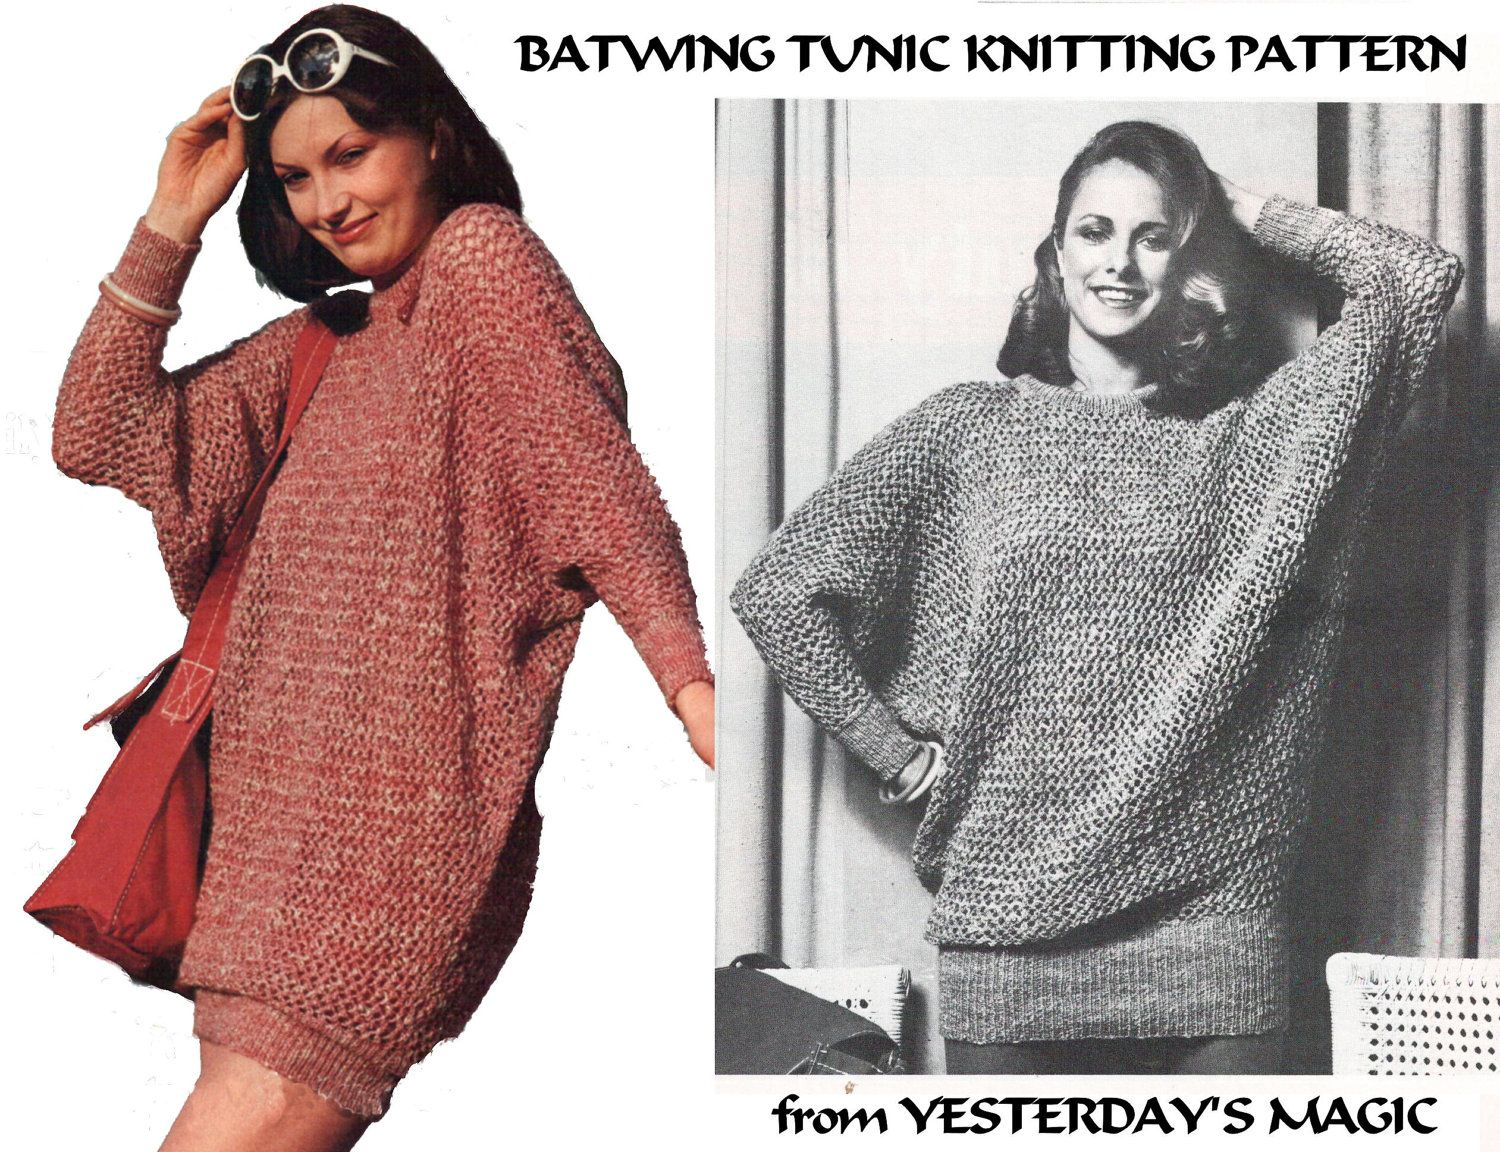 Instant download pdf knitting pattern to make a womens thigh instant download pdf knitting pattern to make a womens thigh length baggy loose fit batwing tunic sweater dress 4 sizes 32 to 38 inch bust bankloansurffo Images